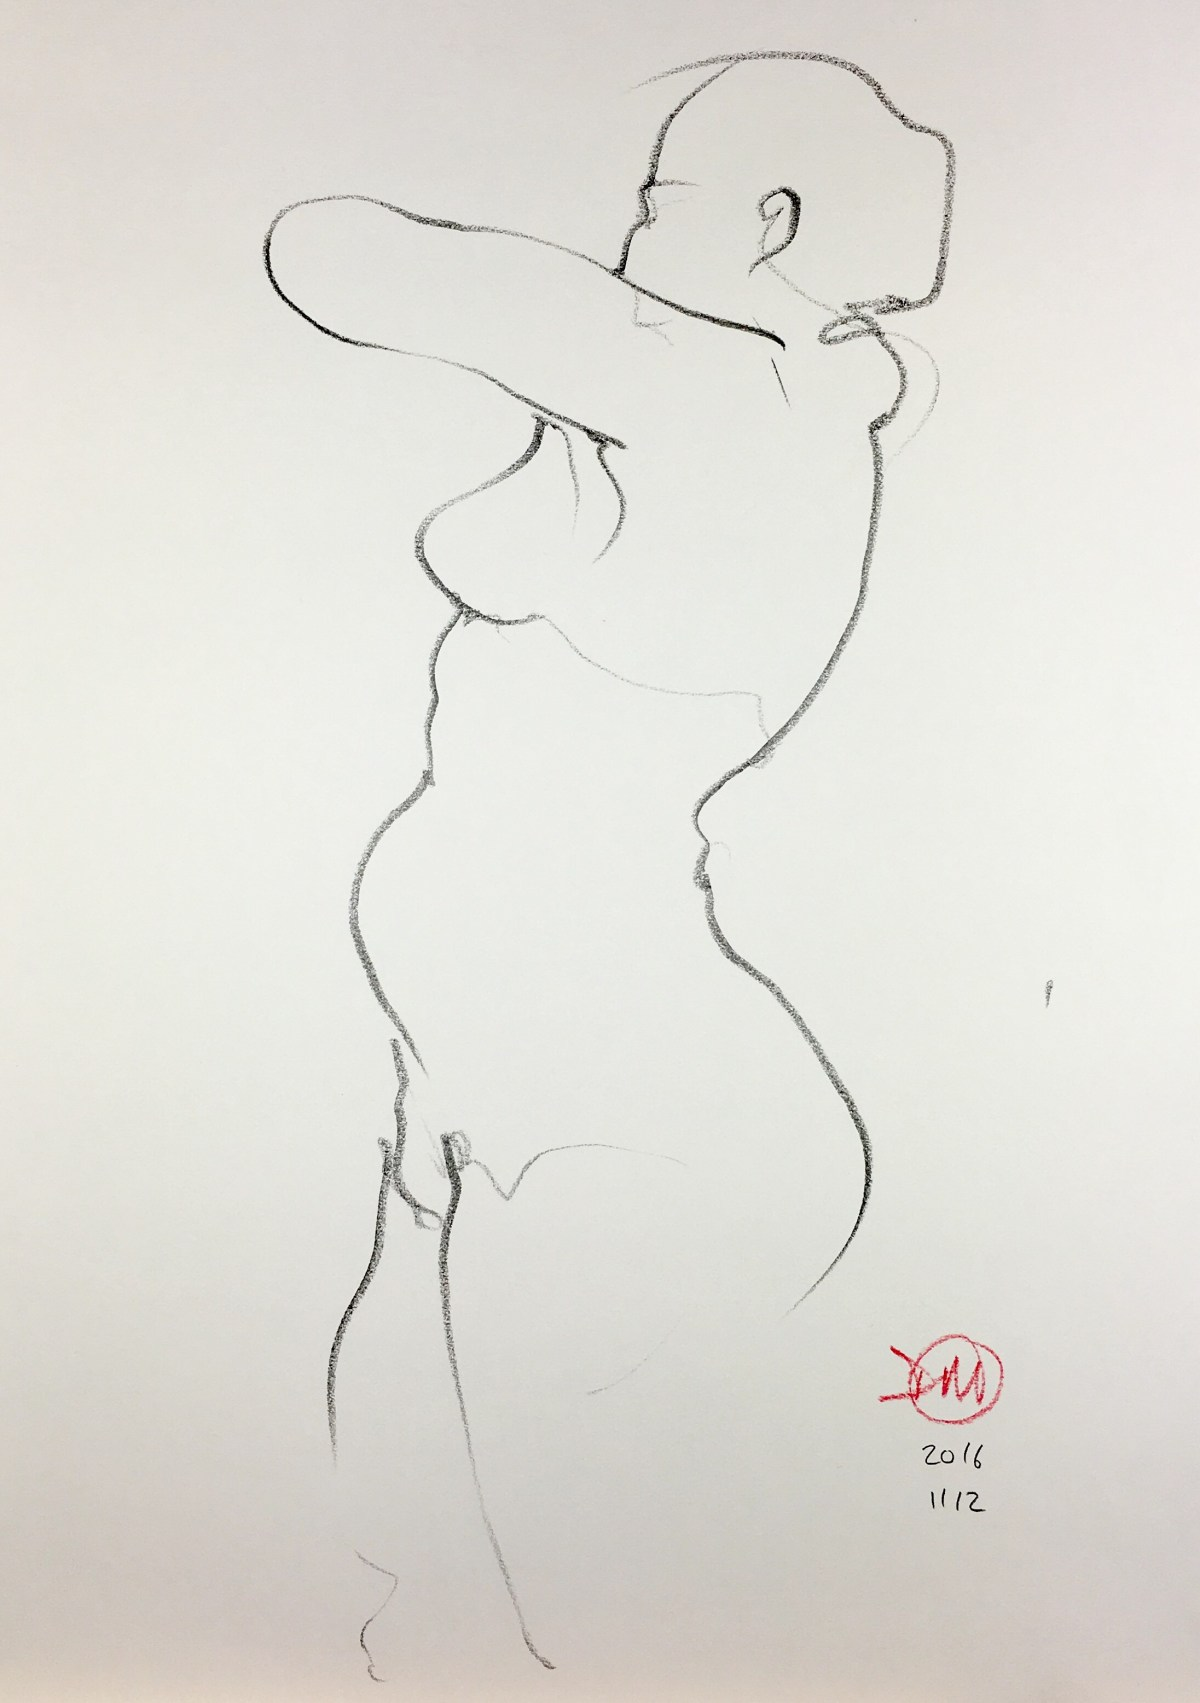 Saturday's life drawing